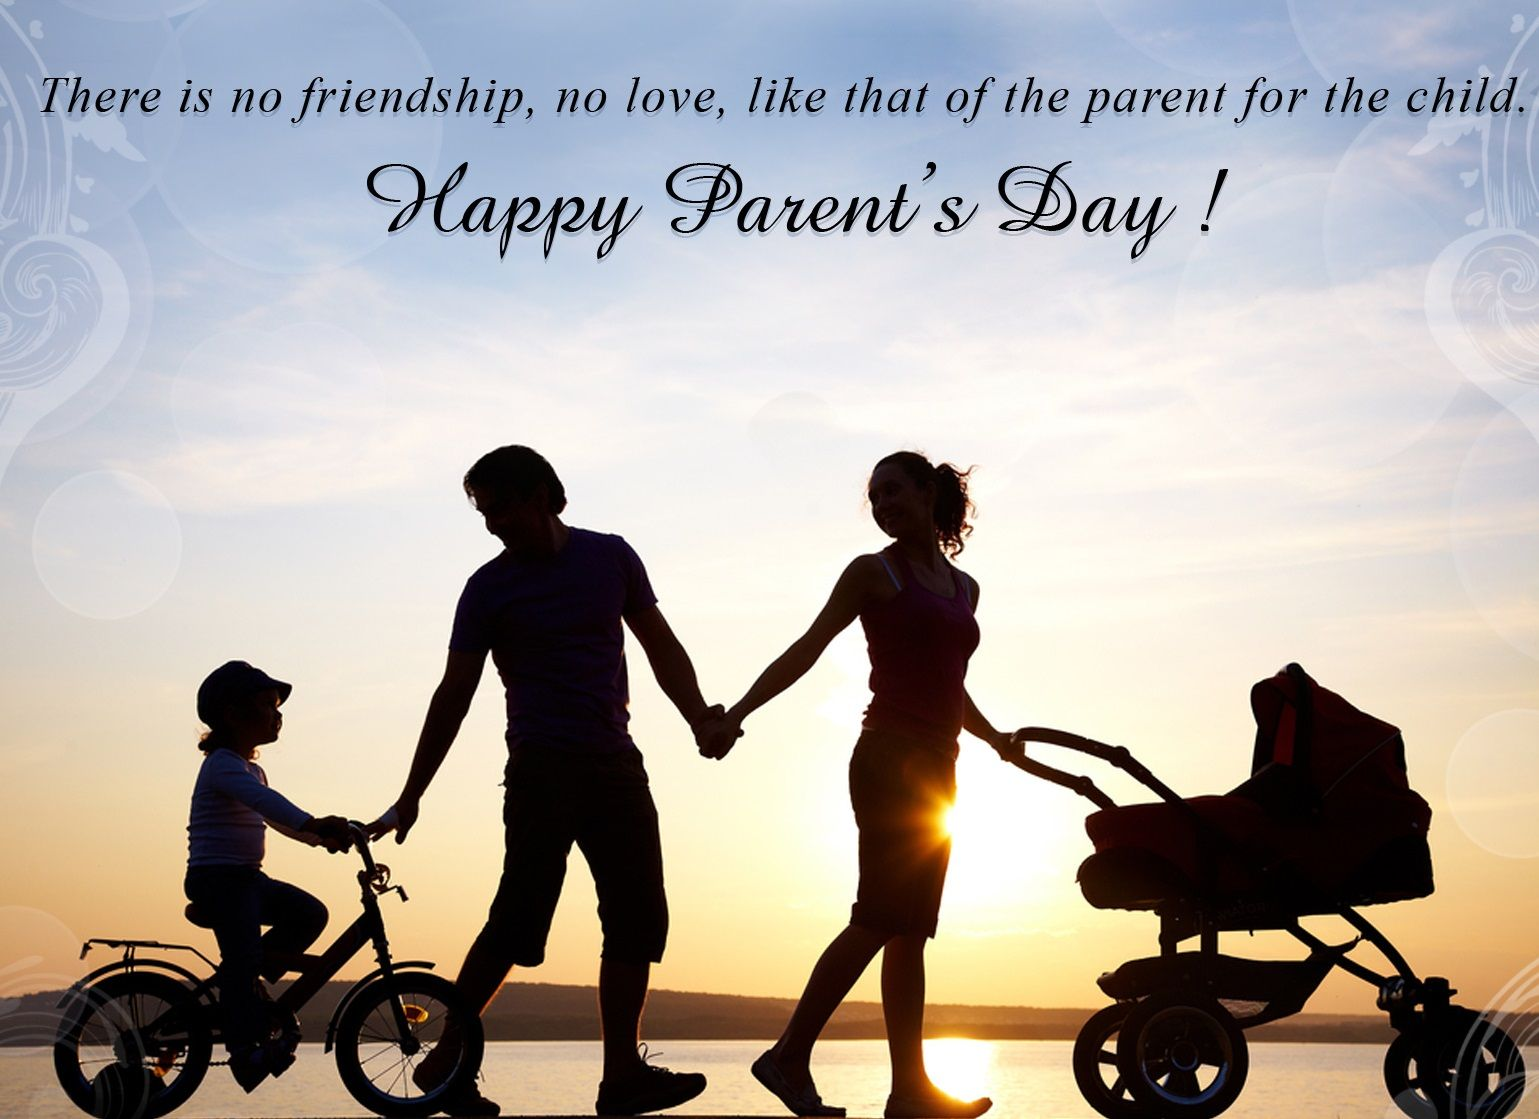 Happy parents day quotes and wishes quotes on parents day happy happy parents day quotes and wishes quotes on parents day thecheapjerseys Image collections